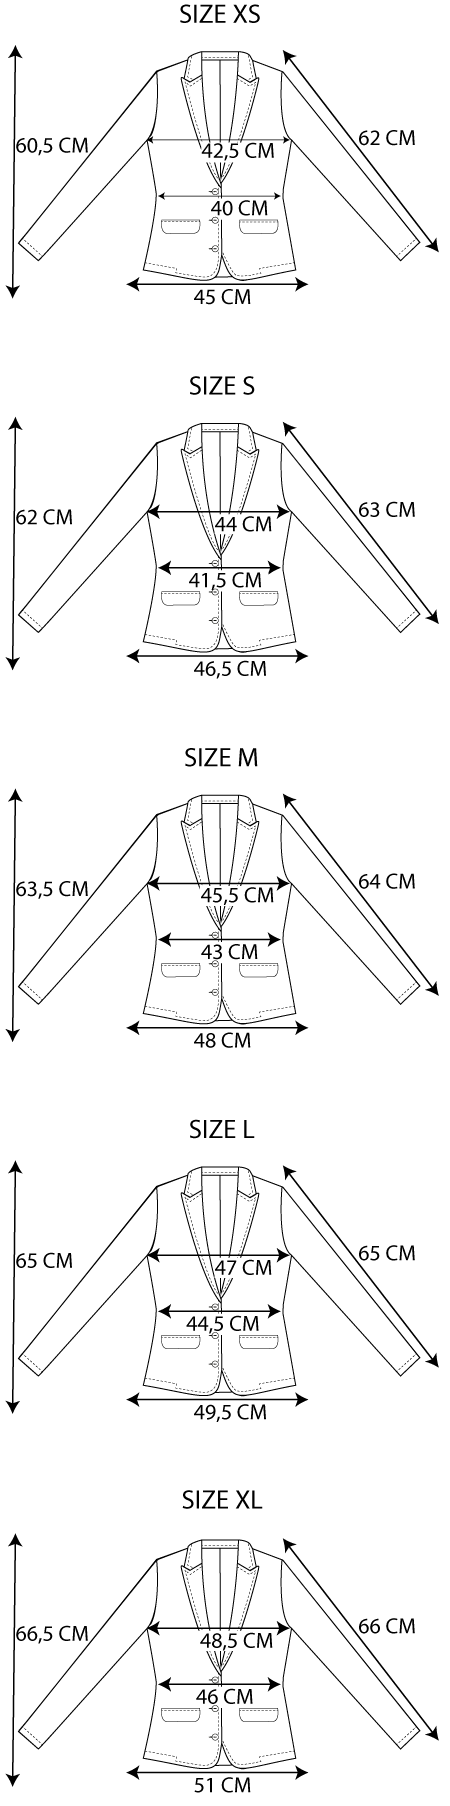 Maattabel easy jacket